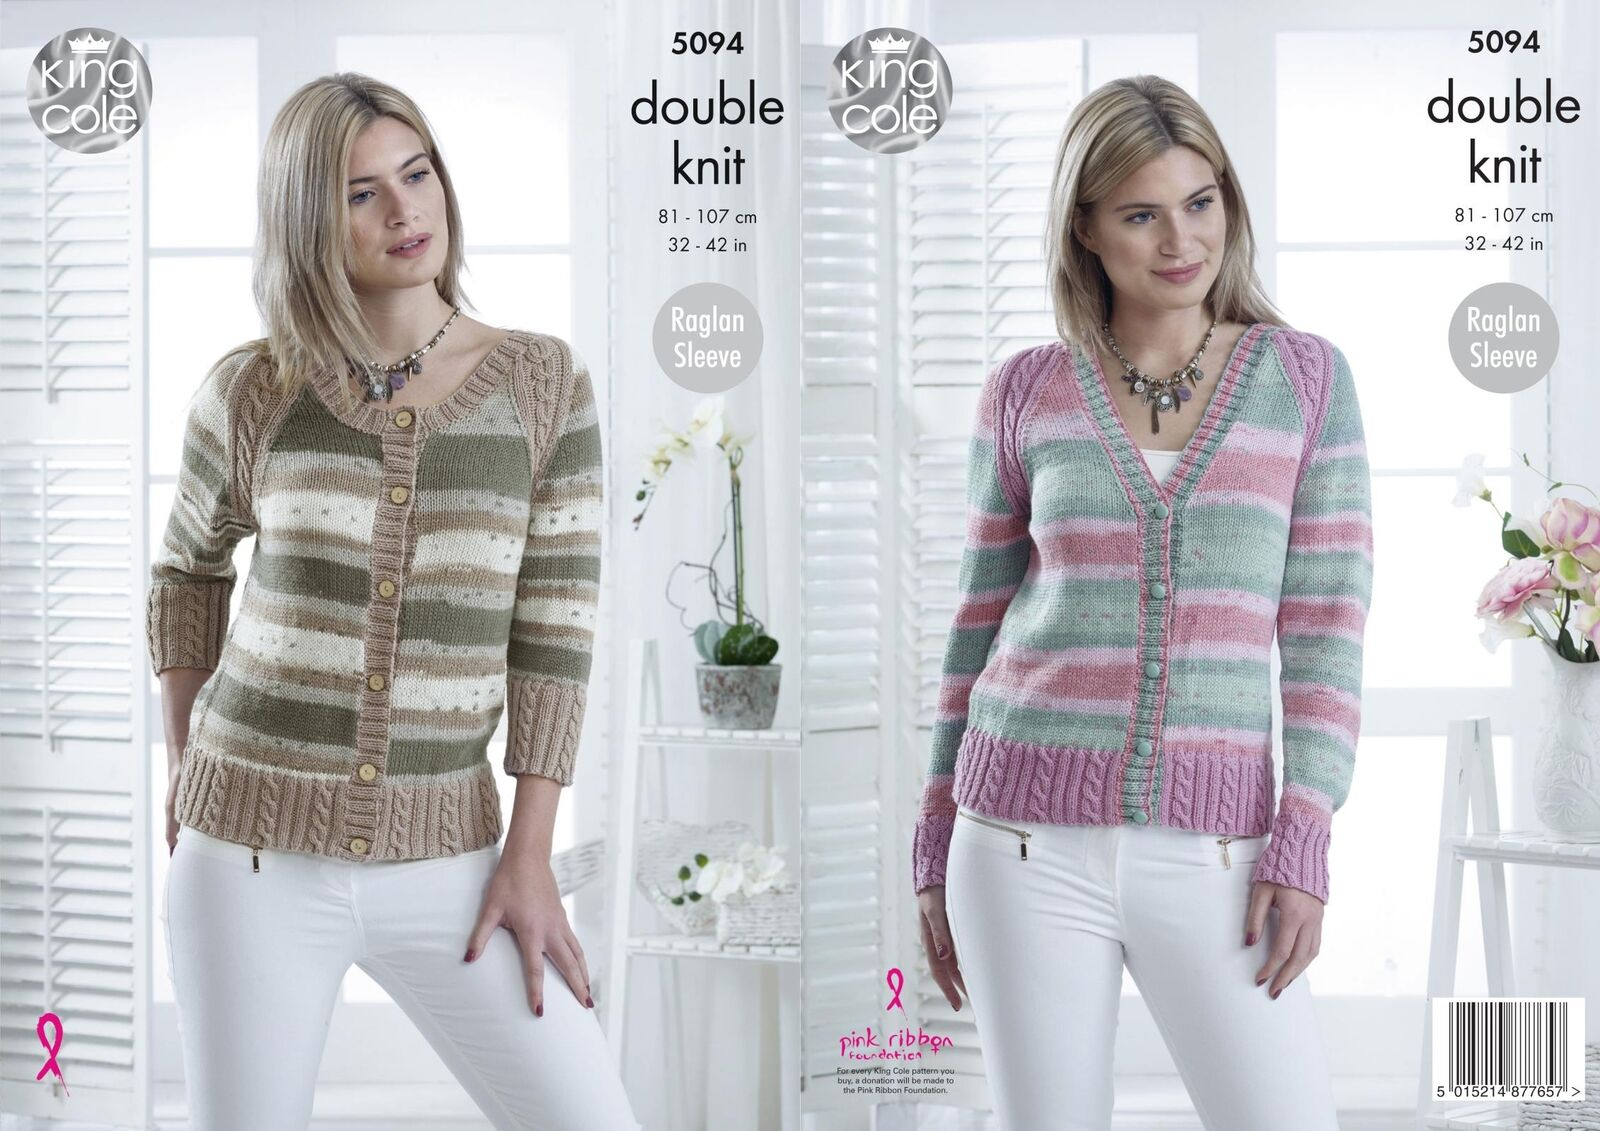 KING COLE 5094 Knitting Pattern Womens Raglan Cardigans in ...